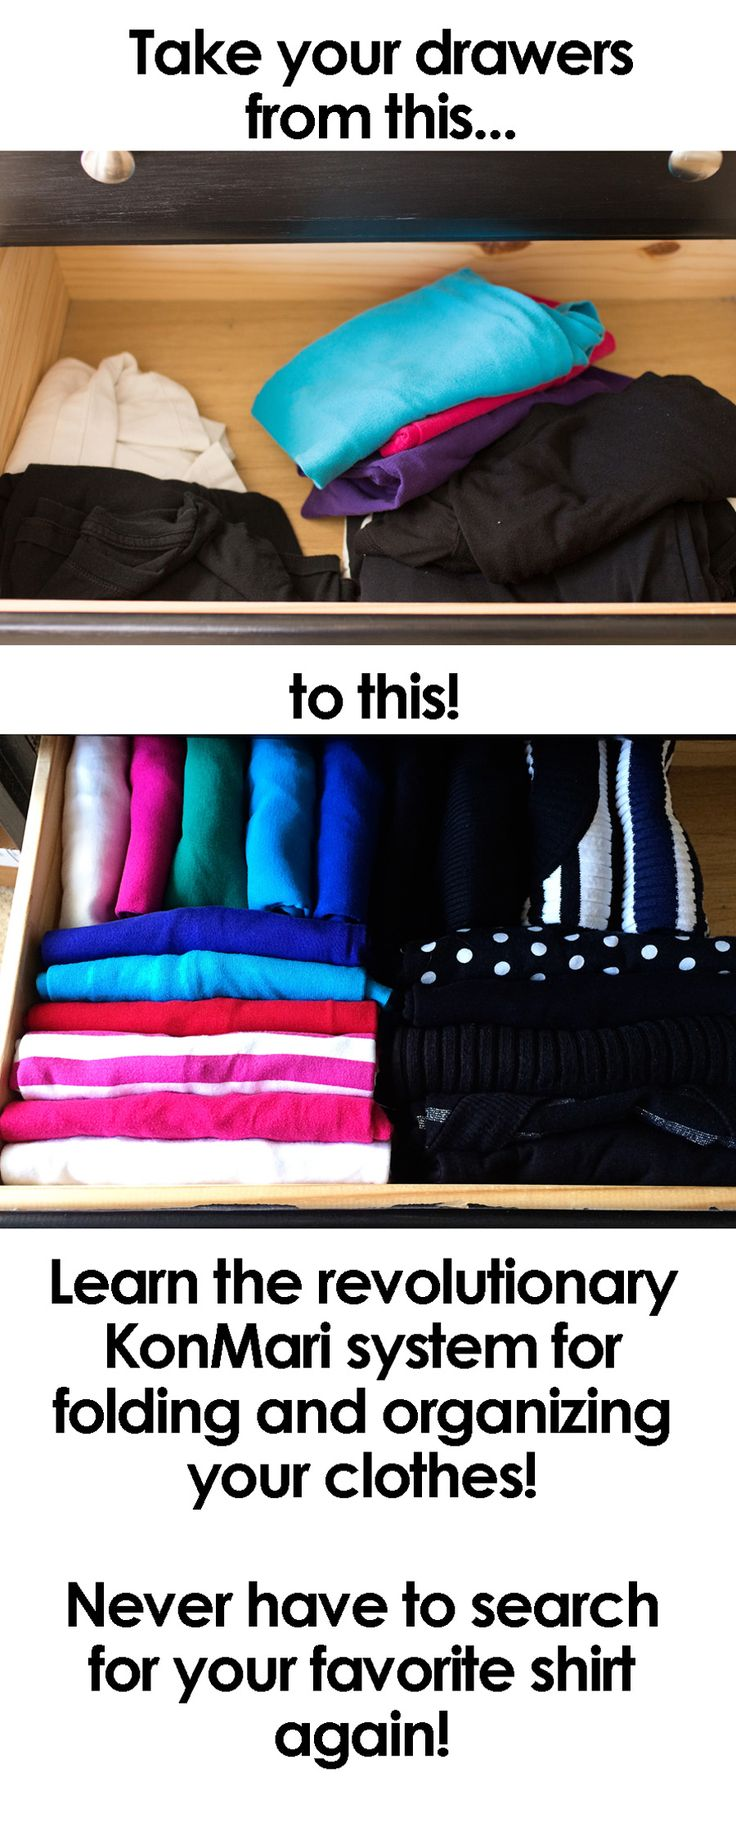 Learn the KonMari way to choose, fold, and store your tops. Your life will never be the same! See videos on the proper way to fold your clothes!